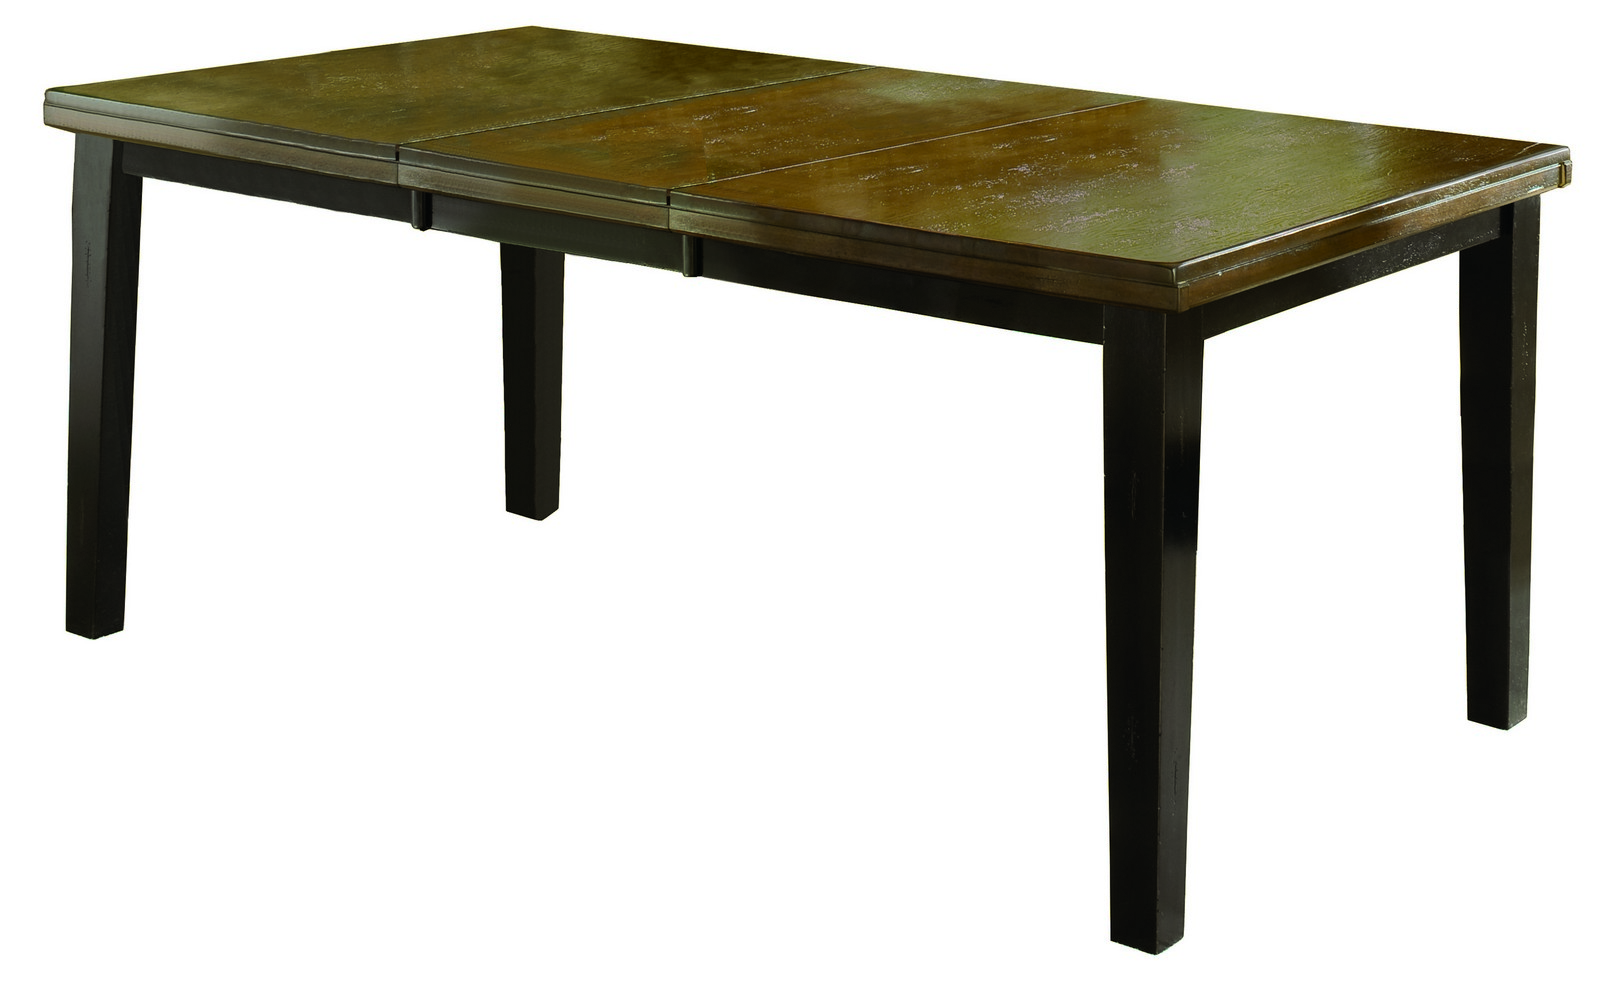 Hillsdale killarney dining table w butterfly leaf black for Black dining table with leaf